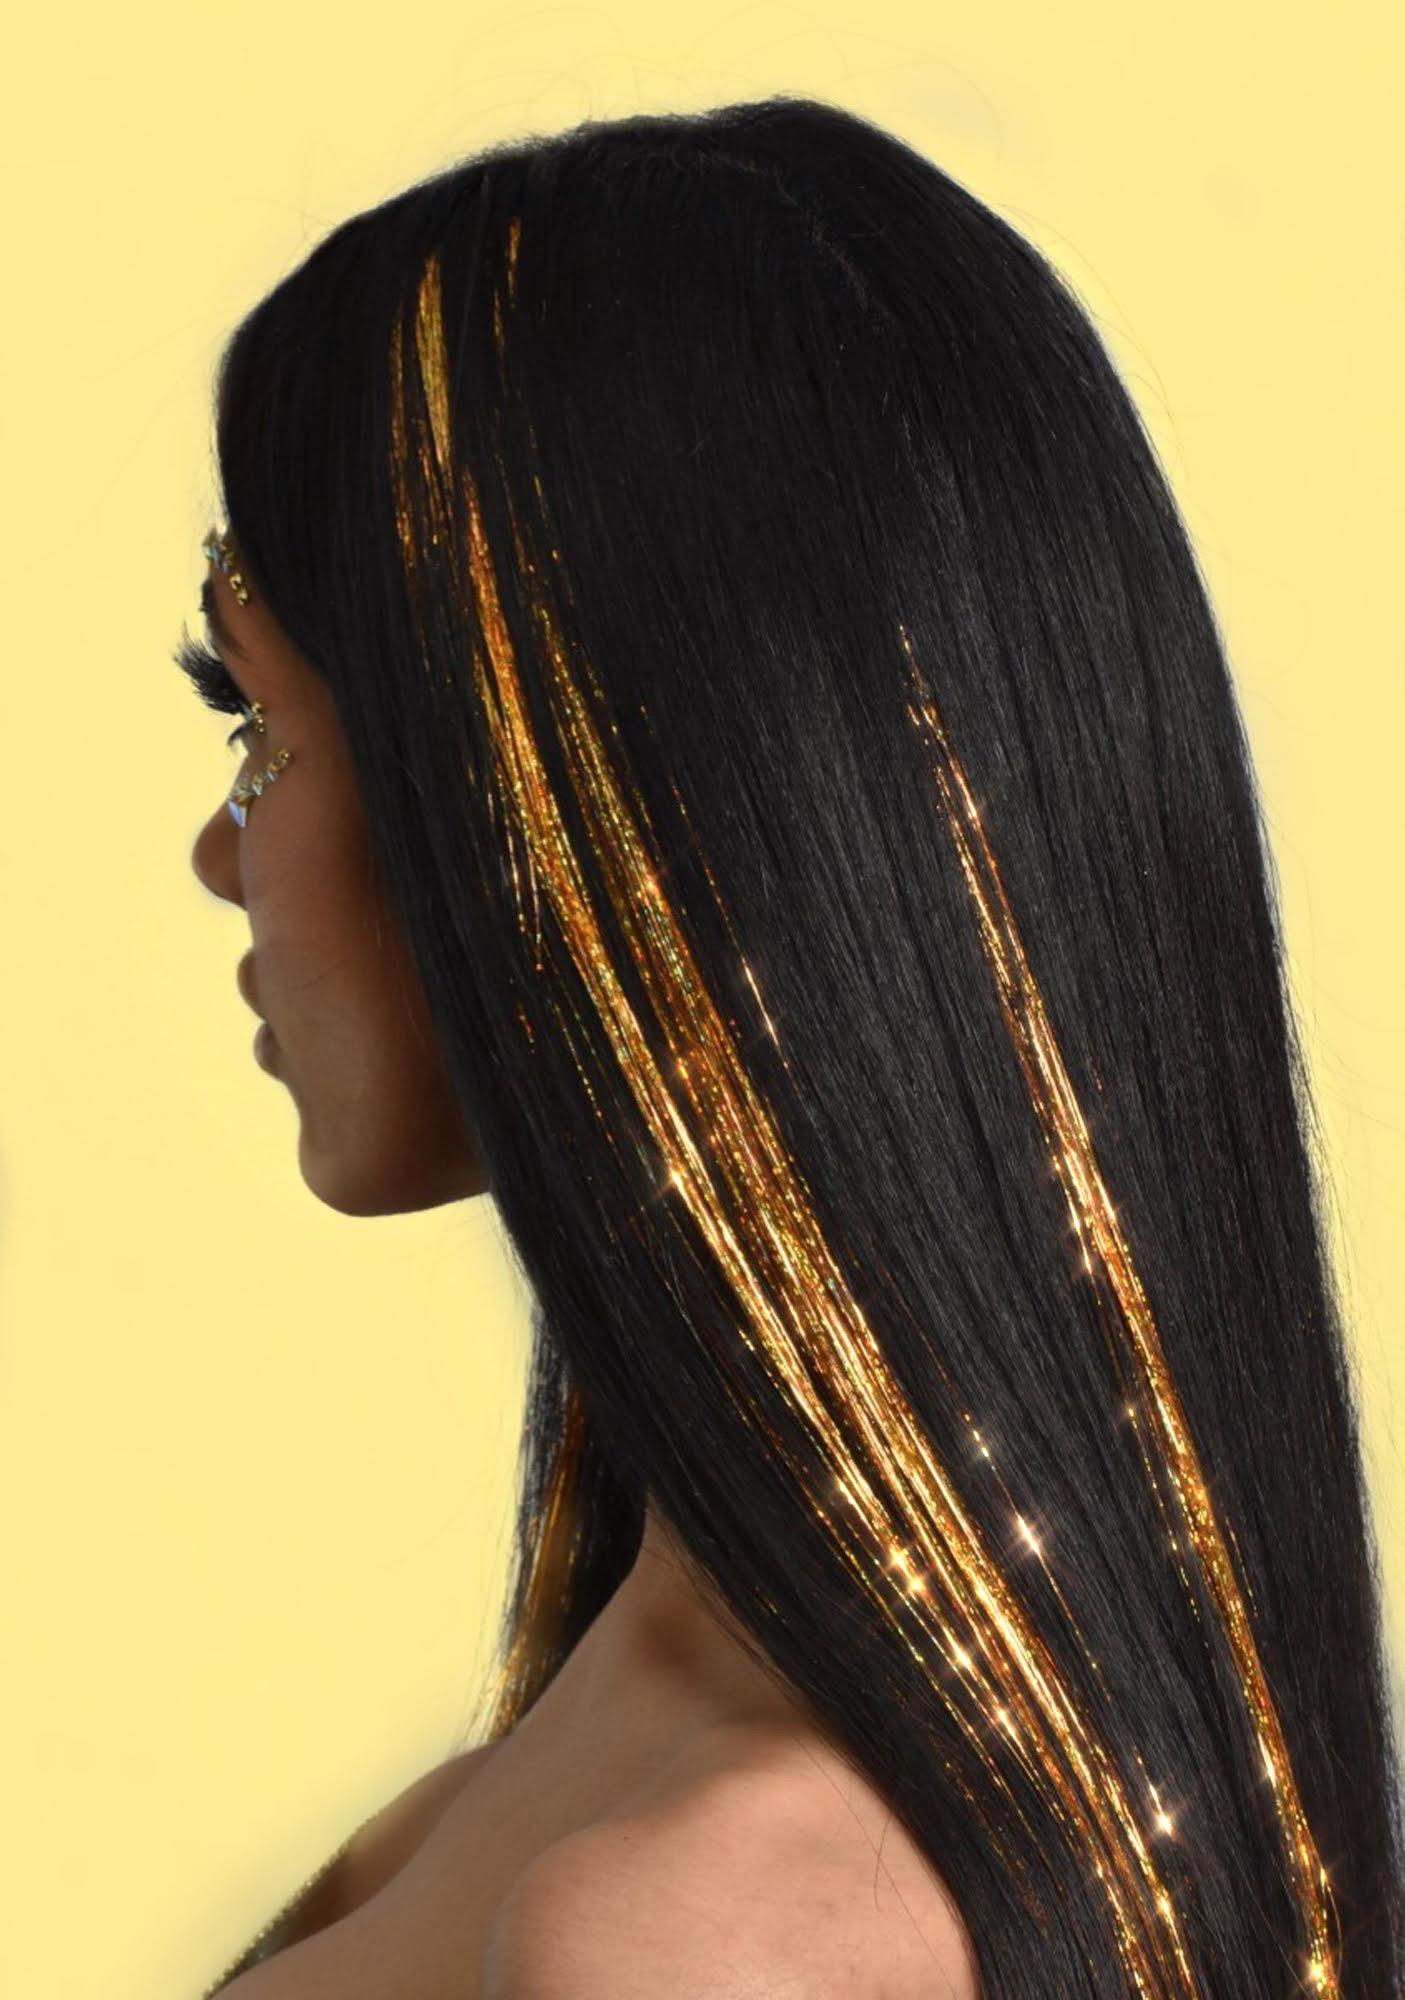 Lunautics Success Gold Holo Hair Tinsel Clip In Extensions